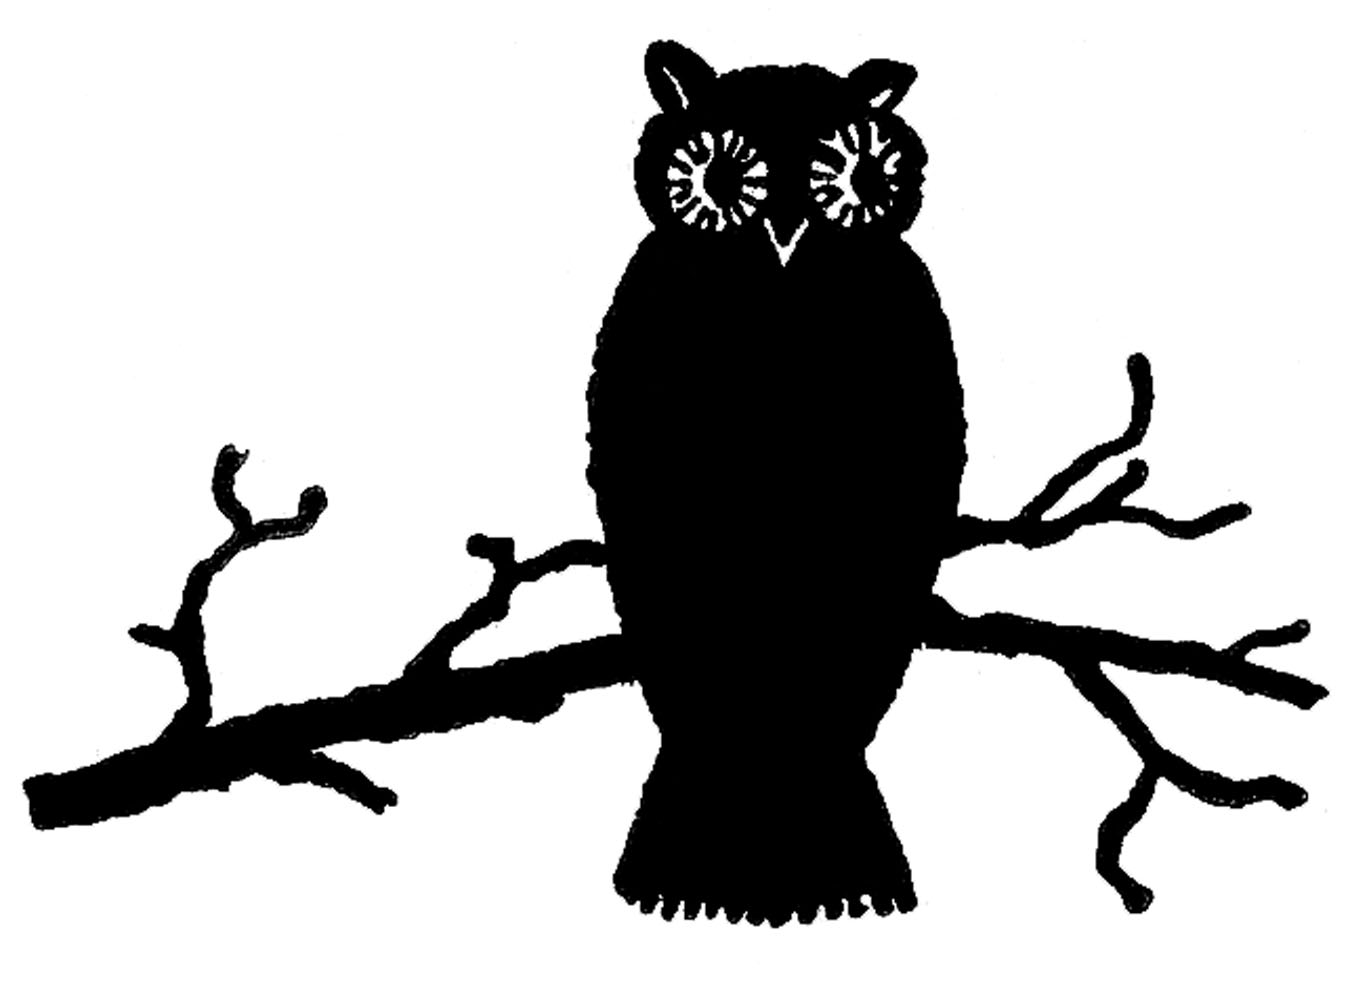 Vintage halloween clip art cute owl silhouette the graphics fairy